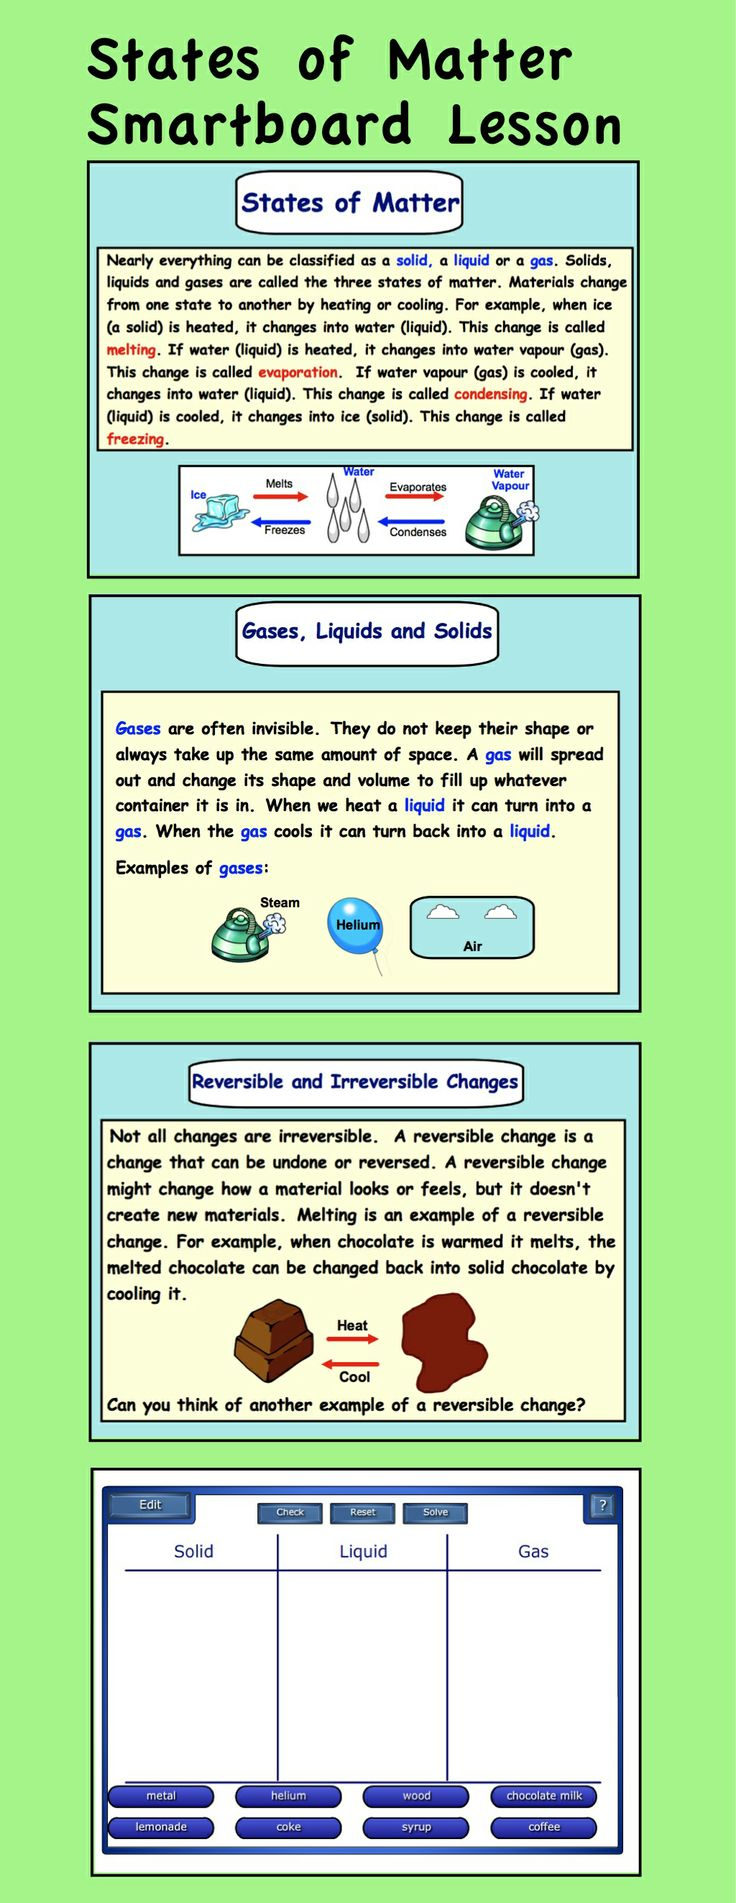 kthe water cycle kthe printable water cycle water matter solids liquids and gases this leads to the water cycle source